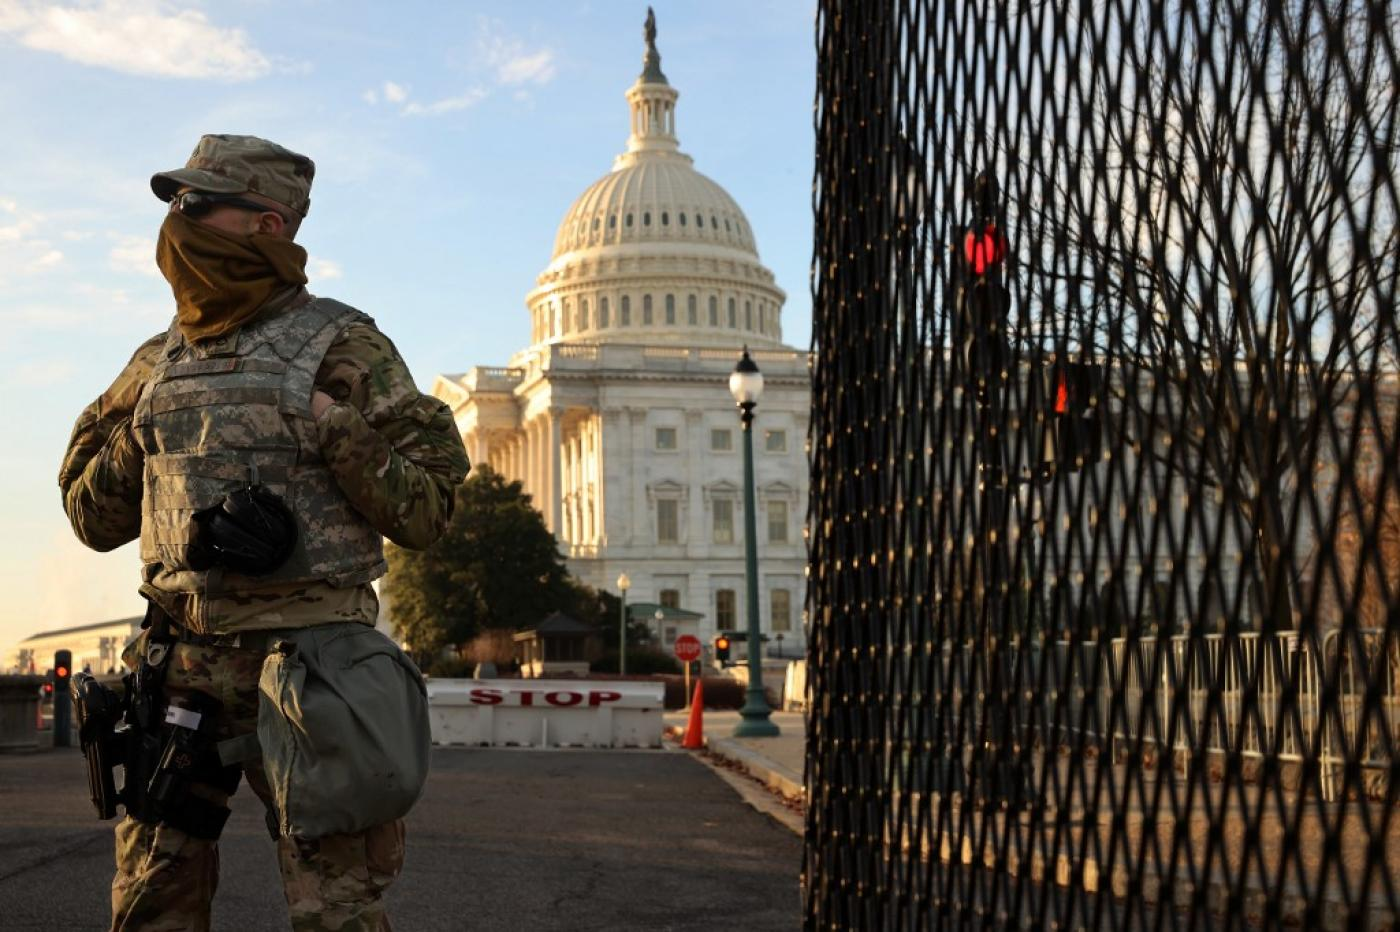 At least 20,000 National Guard troops are being deployed to the nation's capital in anticipation of violence and unrest ahead of Joe Biden's inauguration as president.